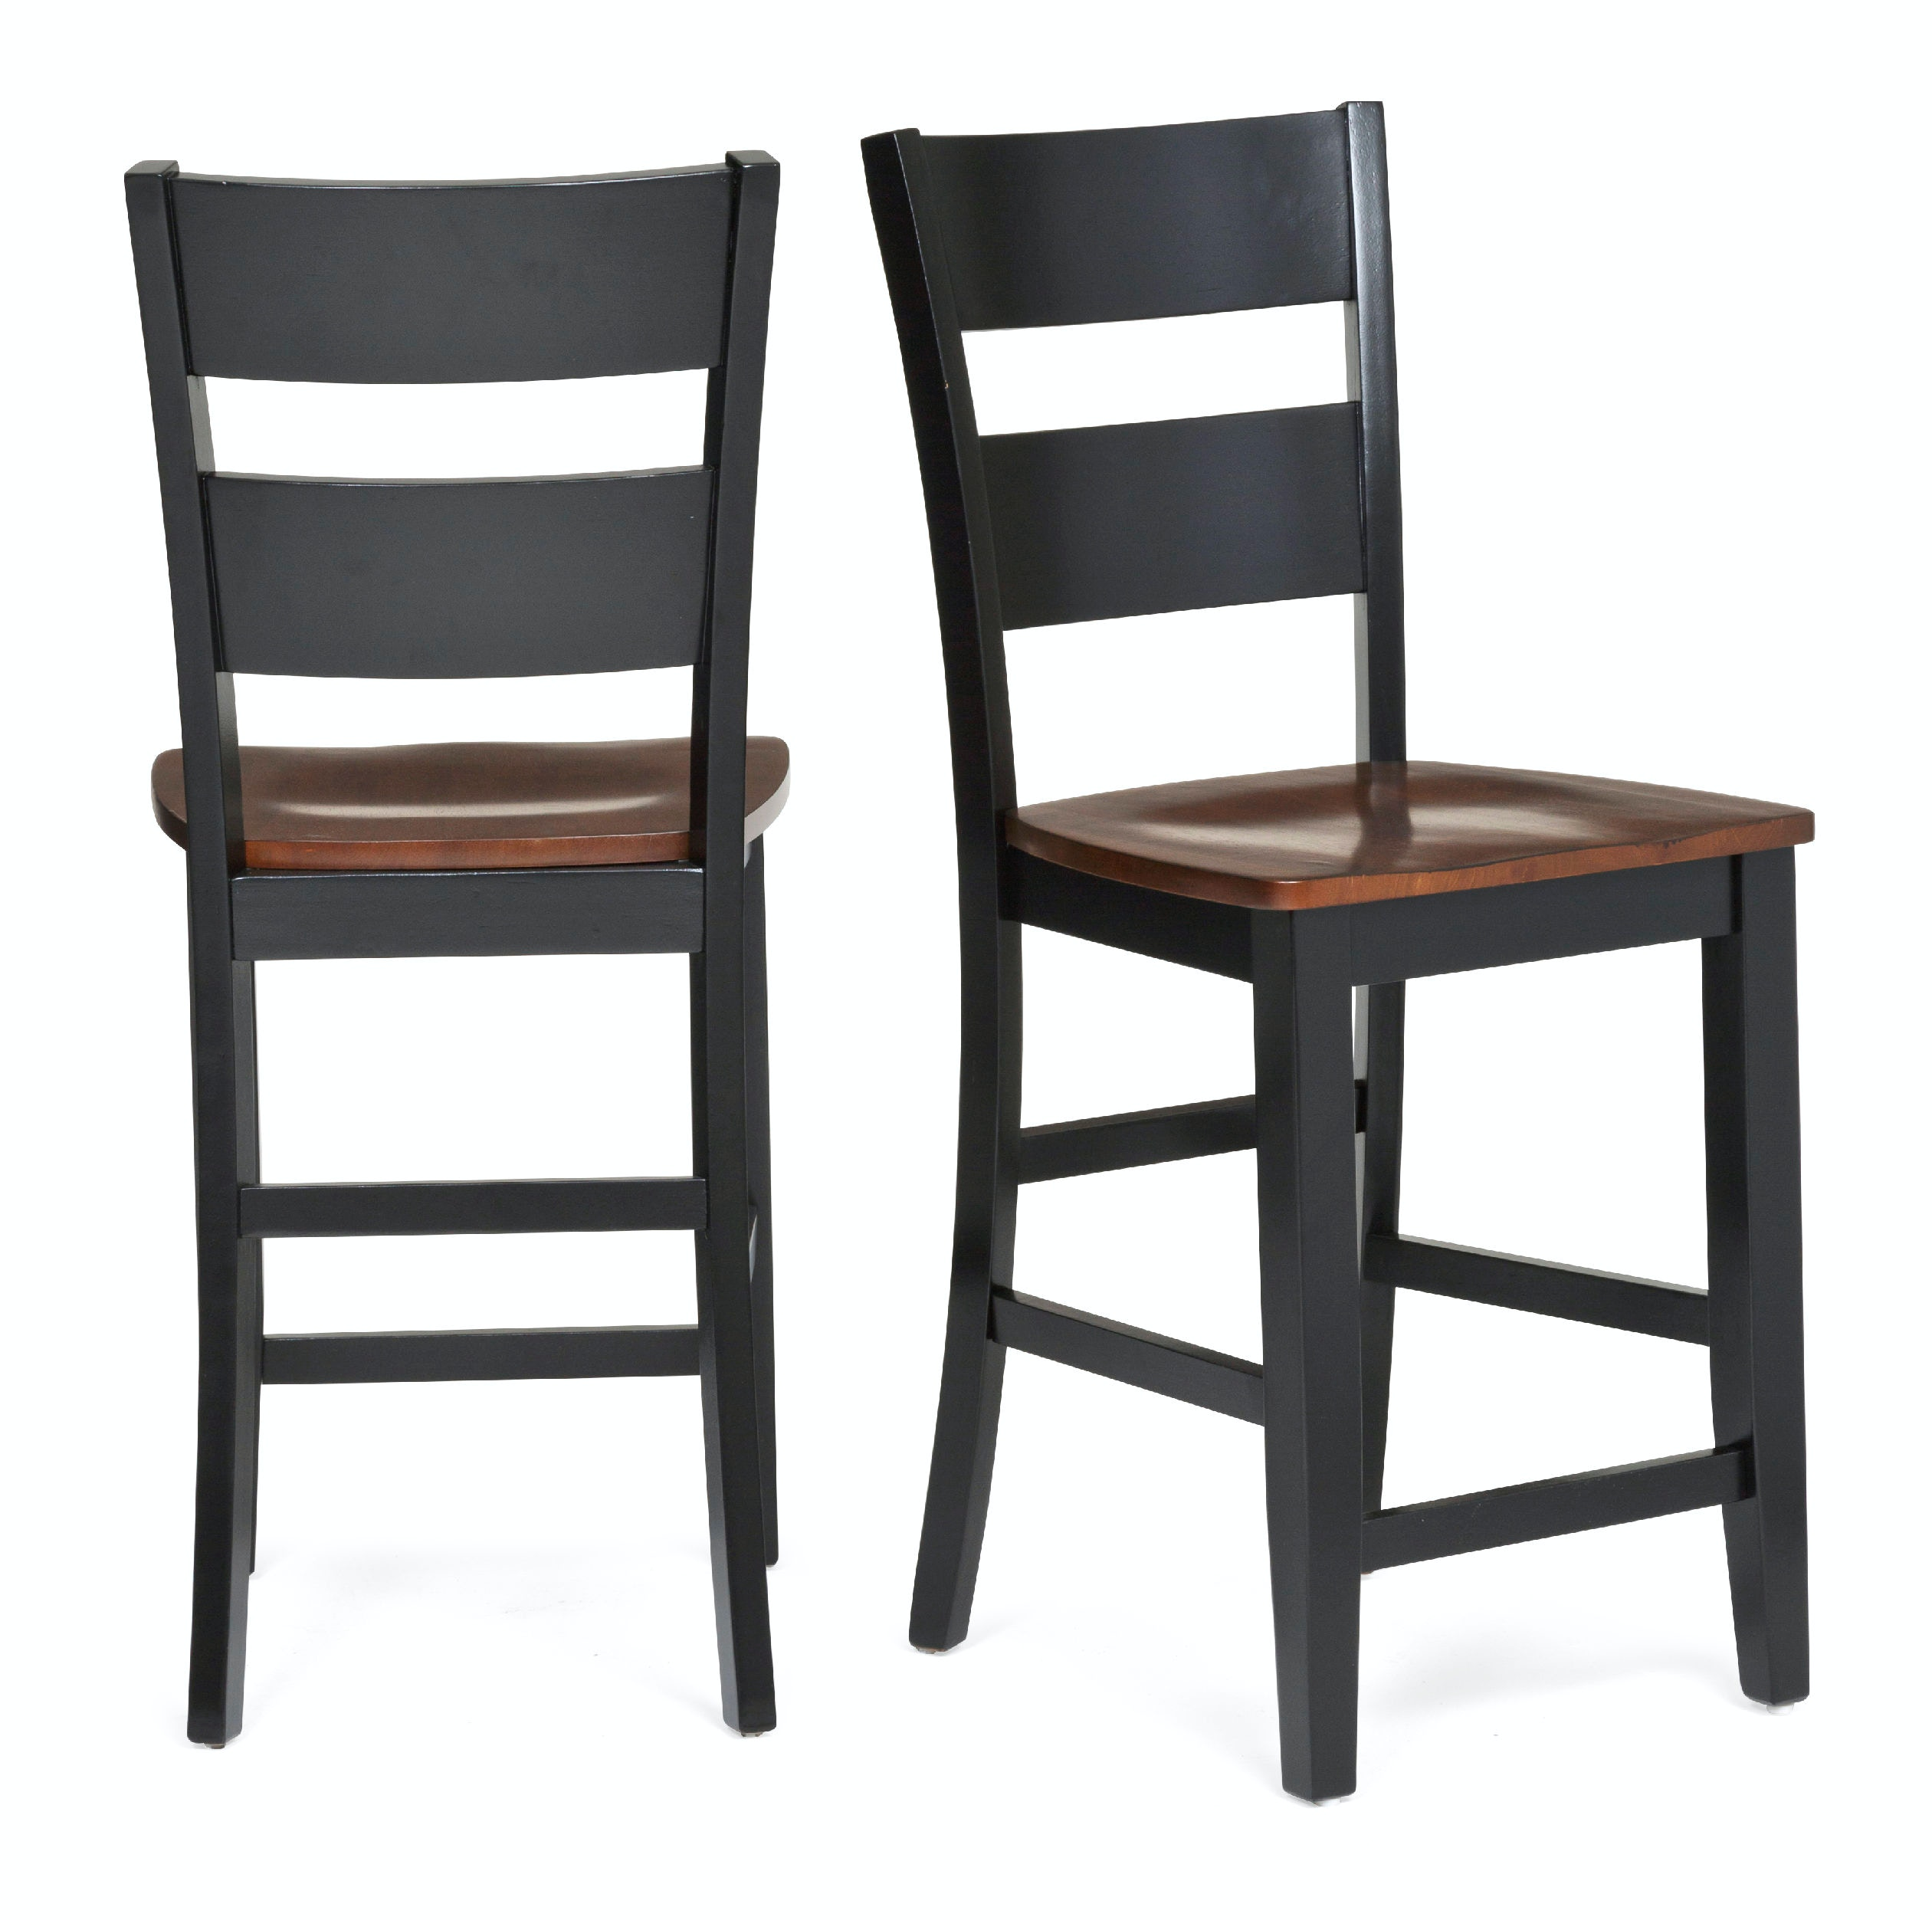 Dining Room Madera Counter Stool BlackCaramel Finish : 438041a from www.starfurniture.com size 2521 x 2505 jpeg 222kB